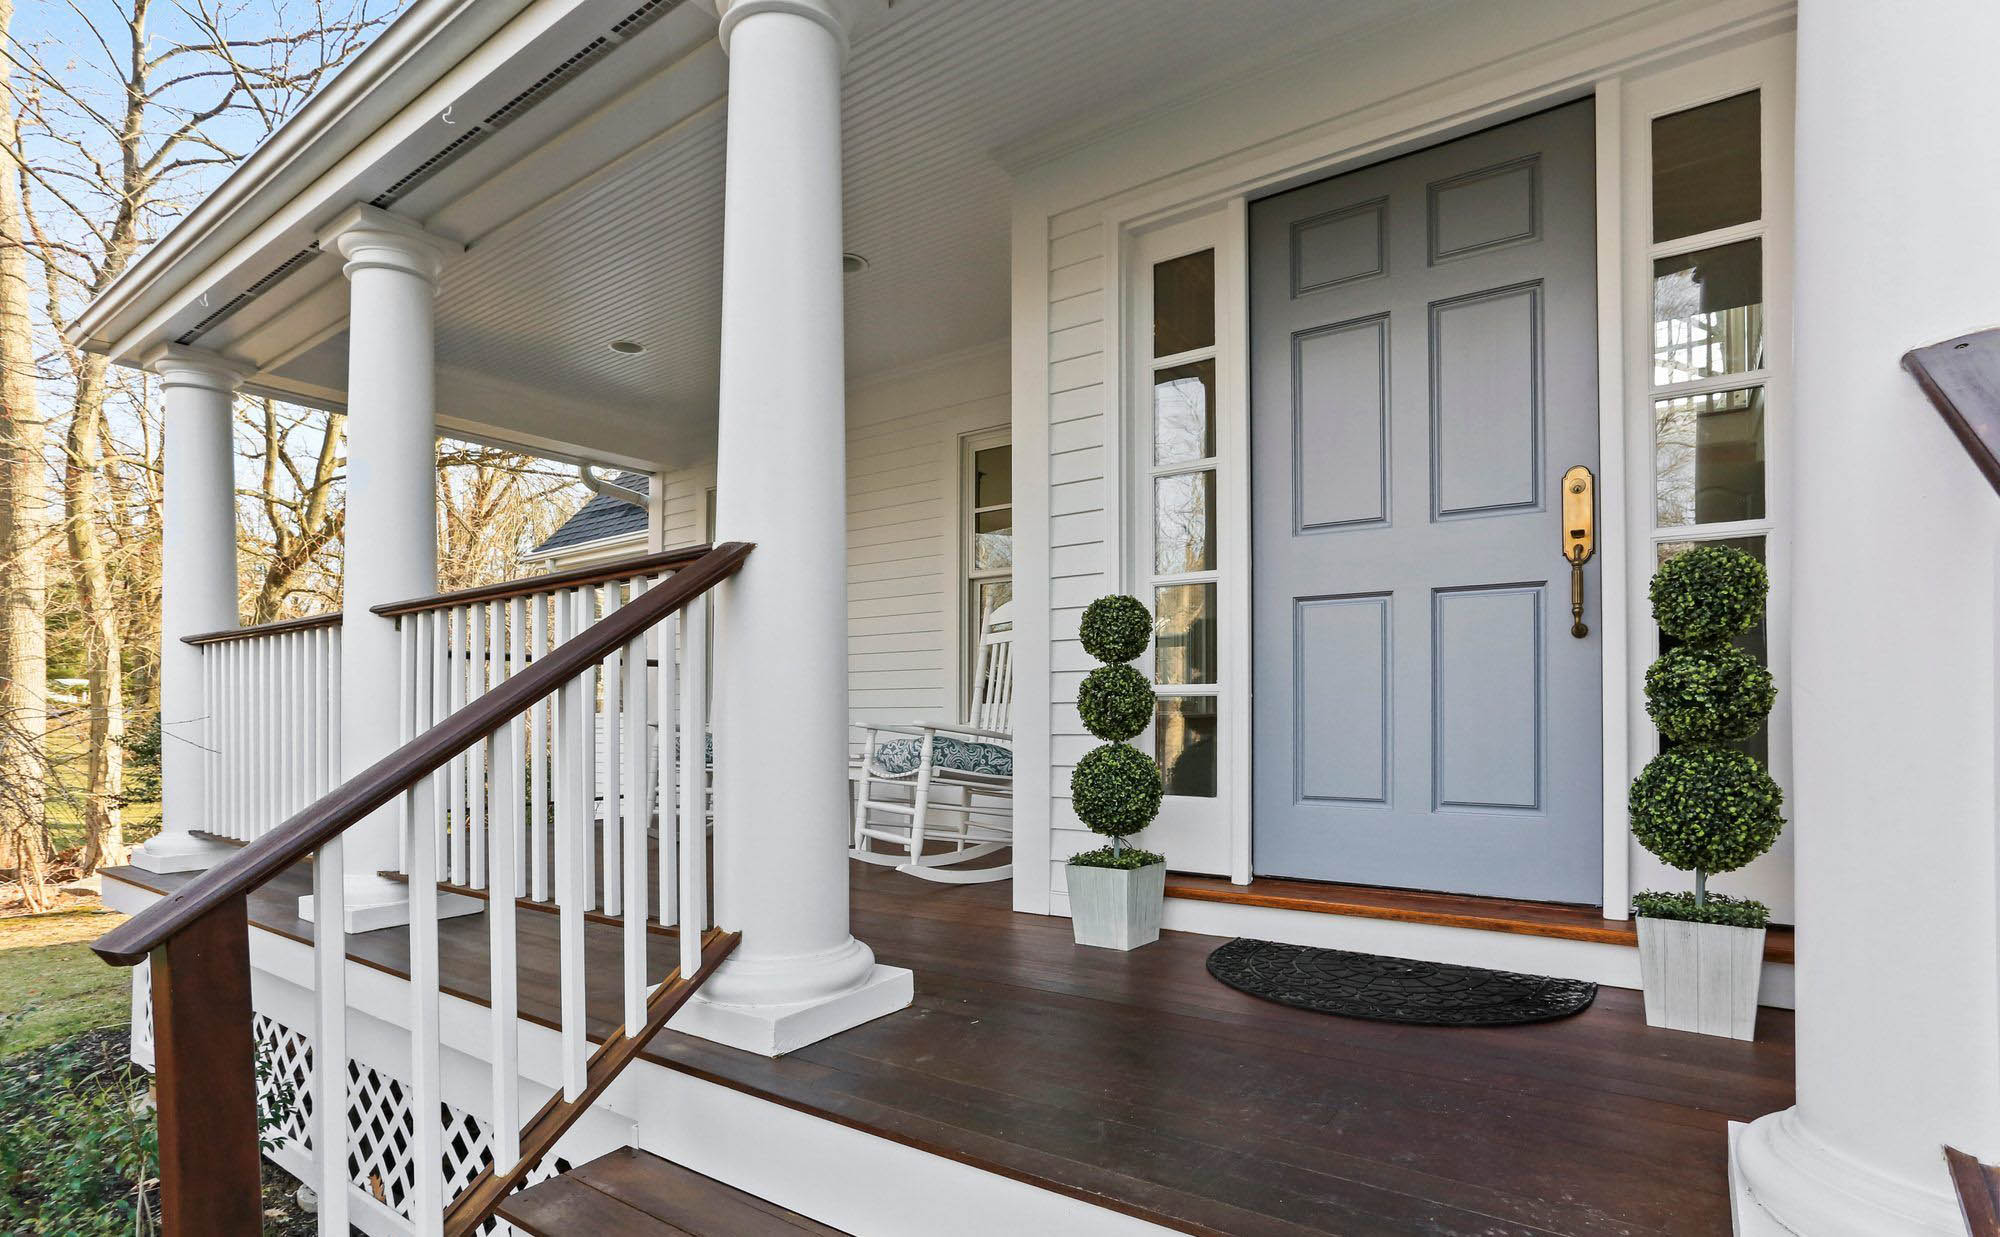 White composite fascia and bead board porch soffit. White columns, balusters, trim and siding with wood hand rail.